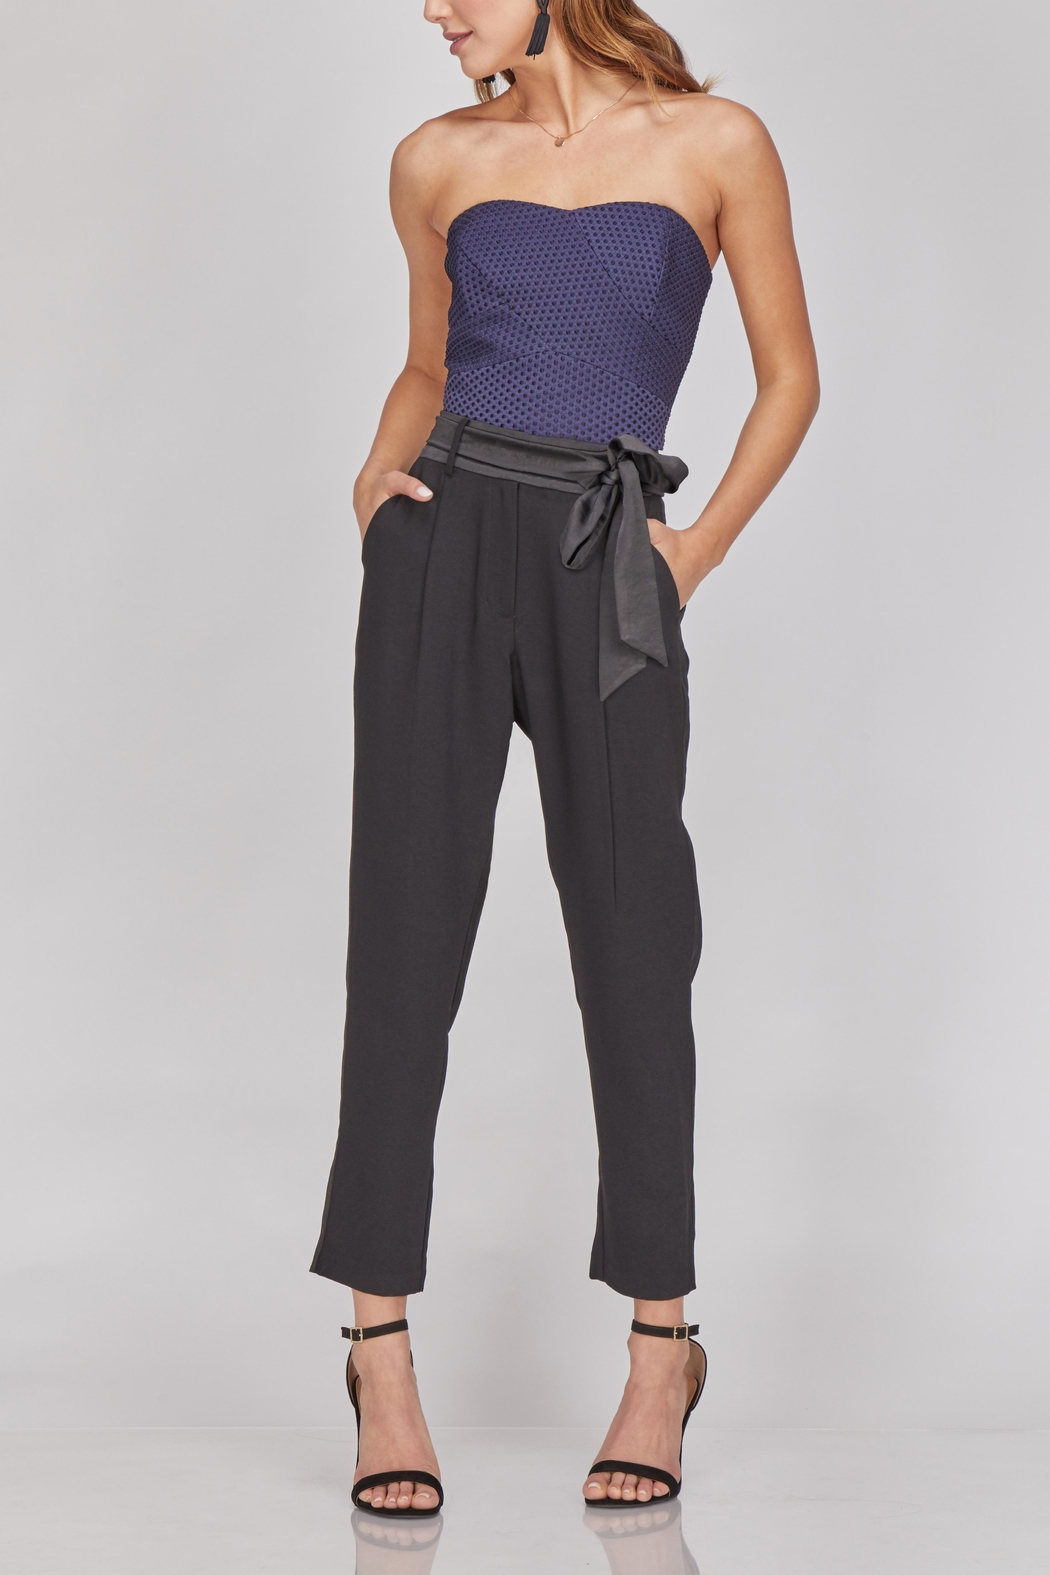 Greylin Cropped Belted Trouser - Main Image